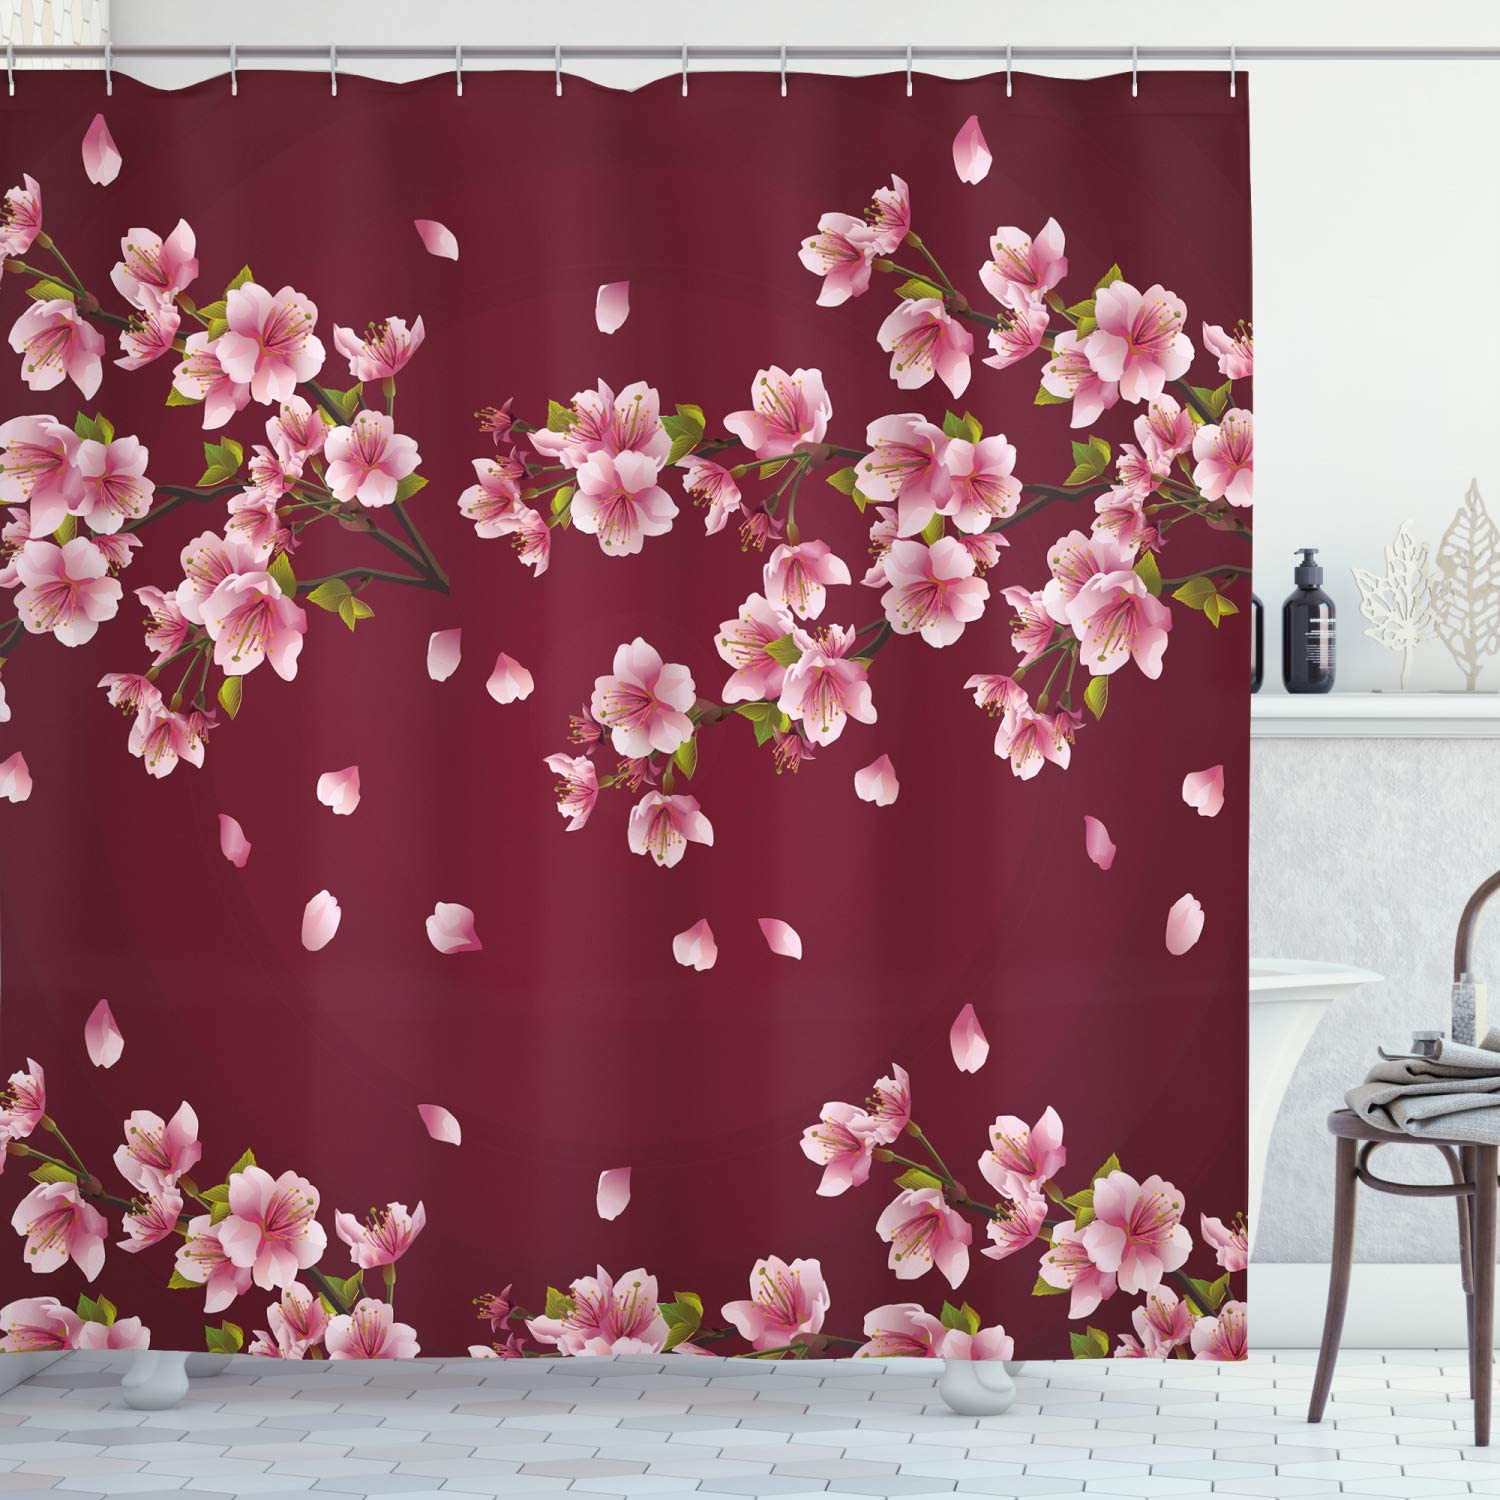 Ambesonne Maroon Shower Curtain, Japanese Sakura Tree Branches in Full Blossom Scattered Petals Spring, Cloth Fabric Bathroom Decor Set with Hooks, 75